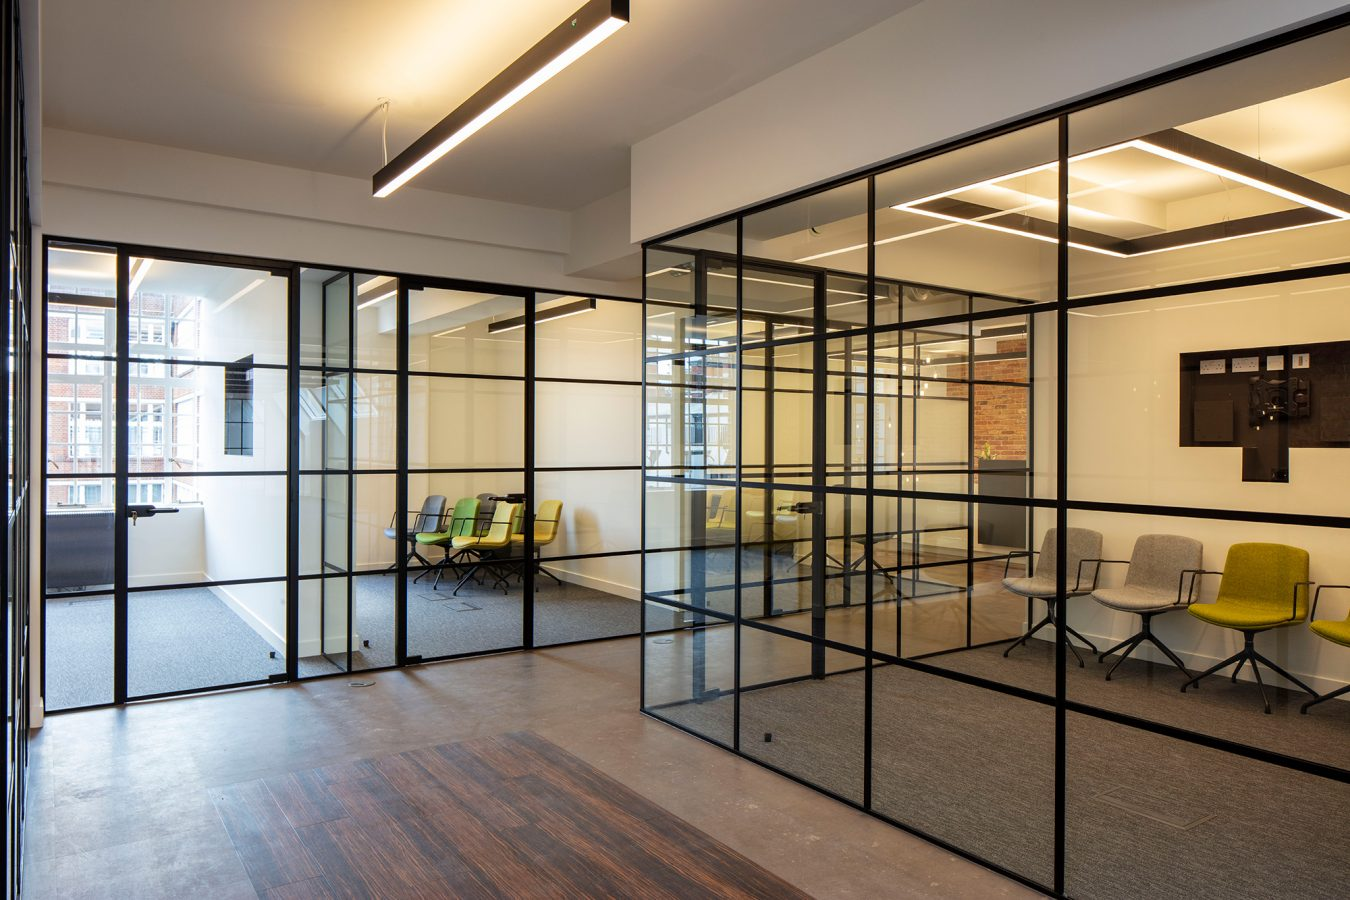 Critall style glazed partitions in a space near Great Titchfield Street refurbished for office relocation.